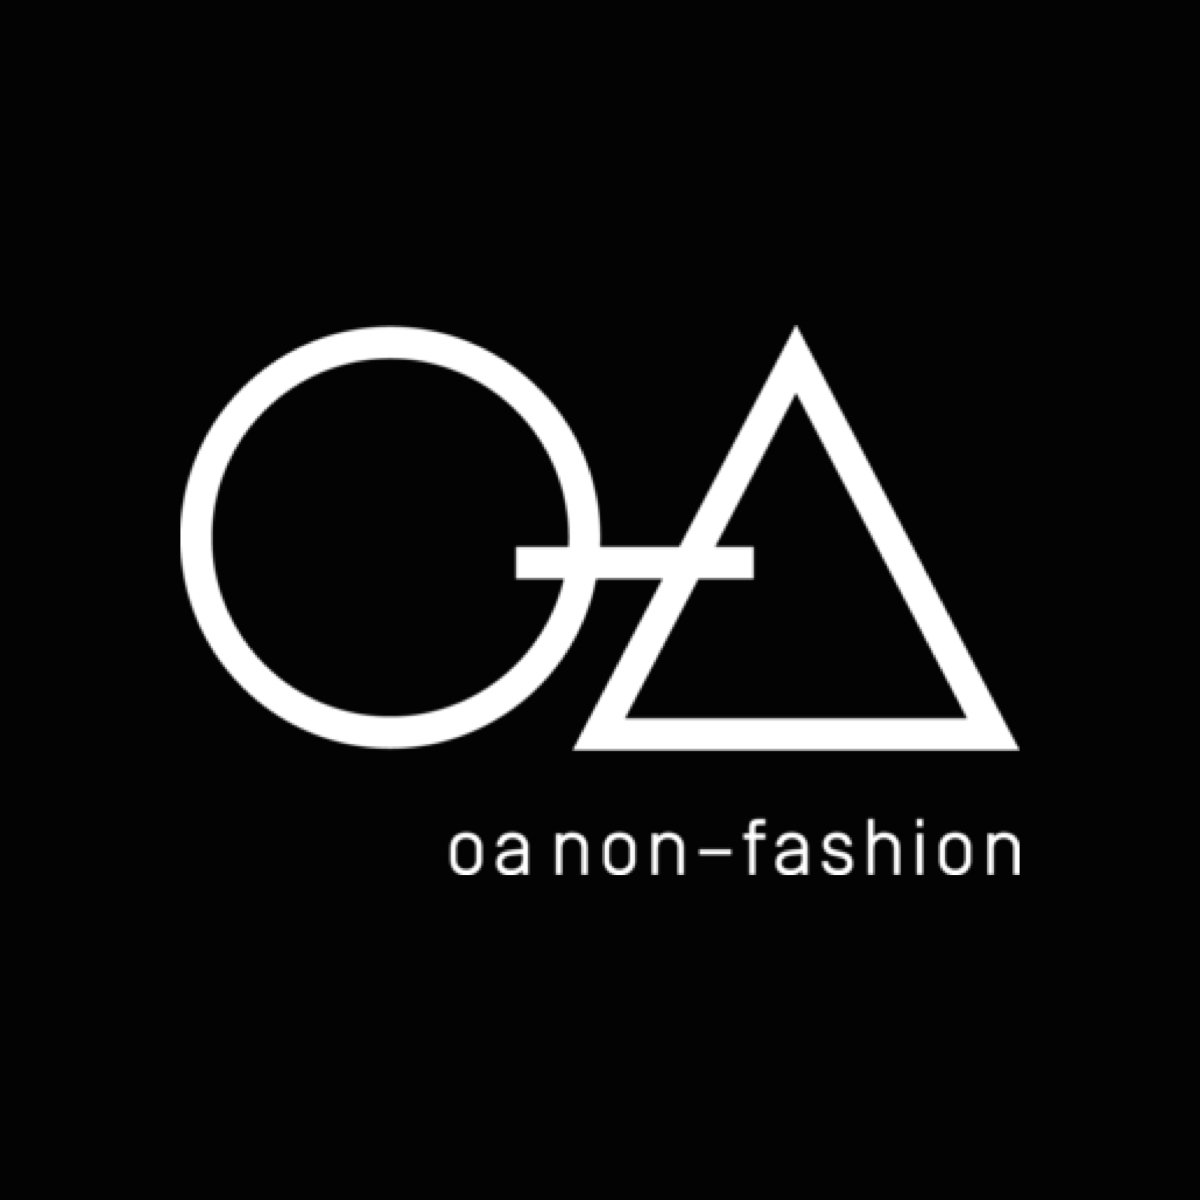 OA NON - FASHION